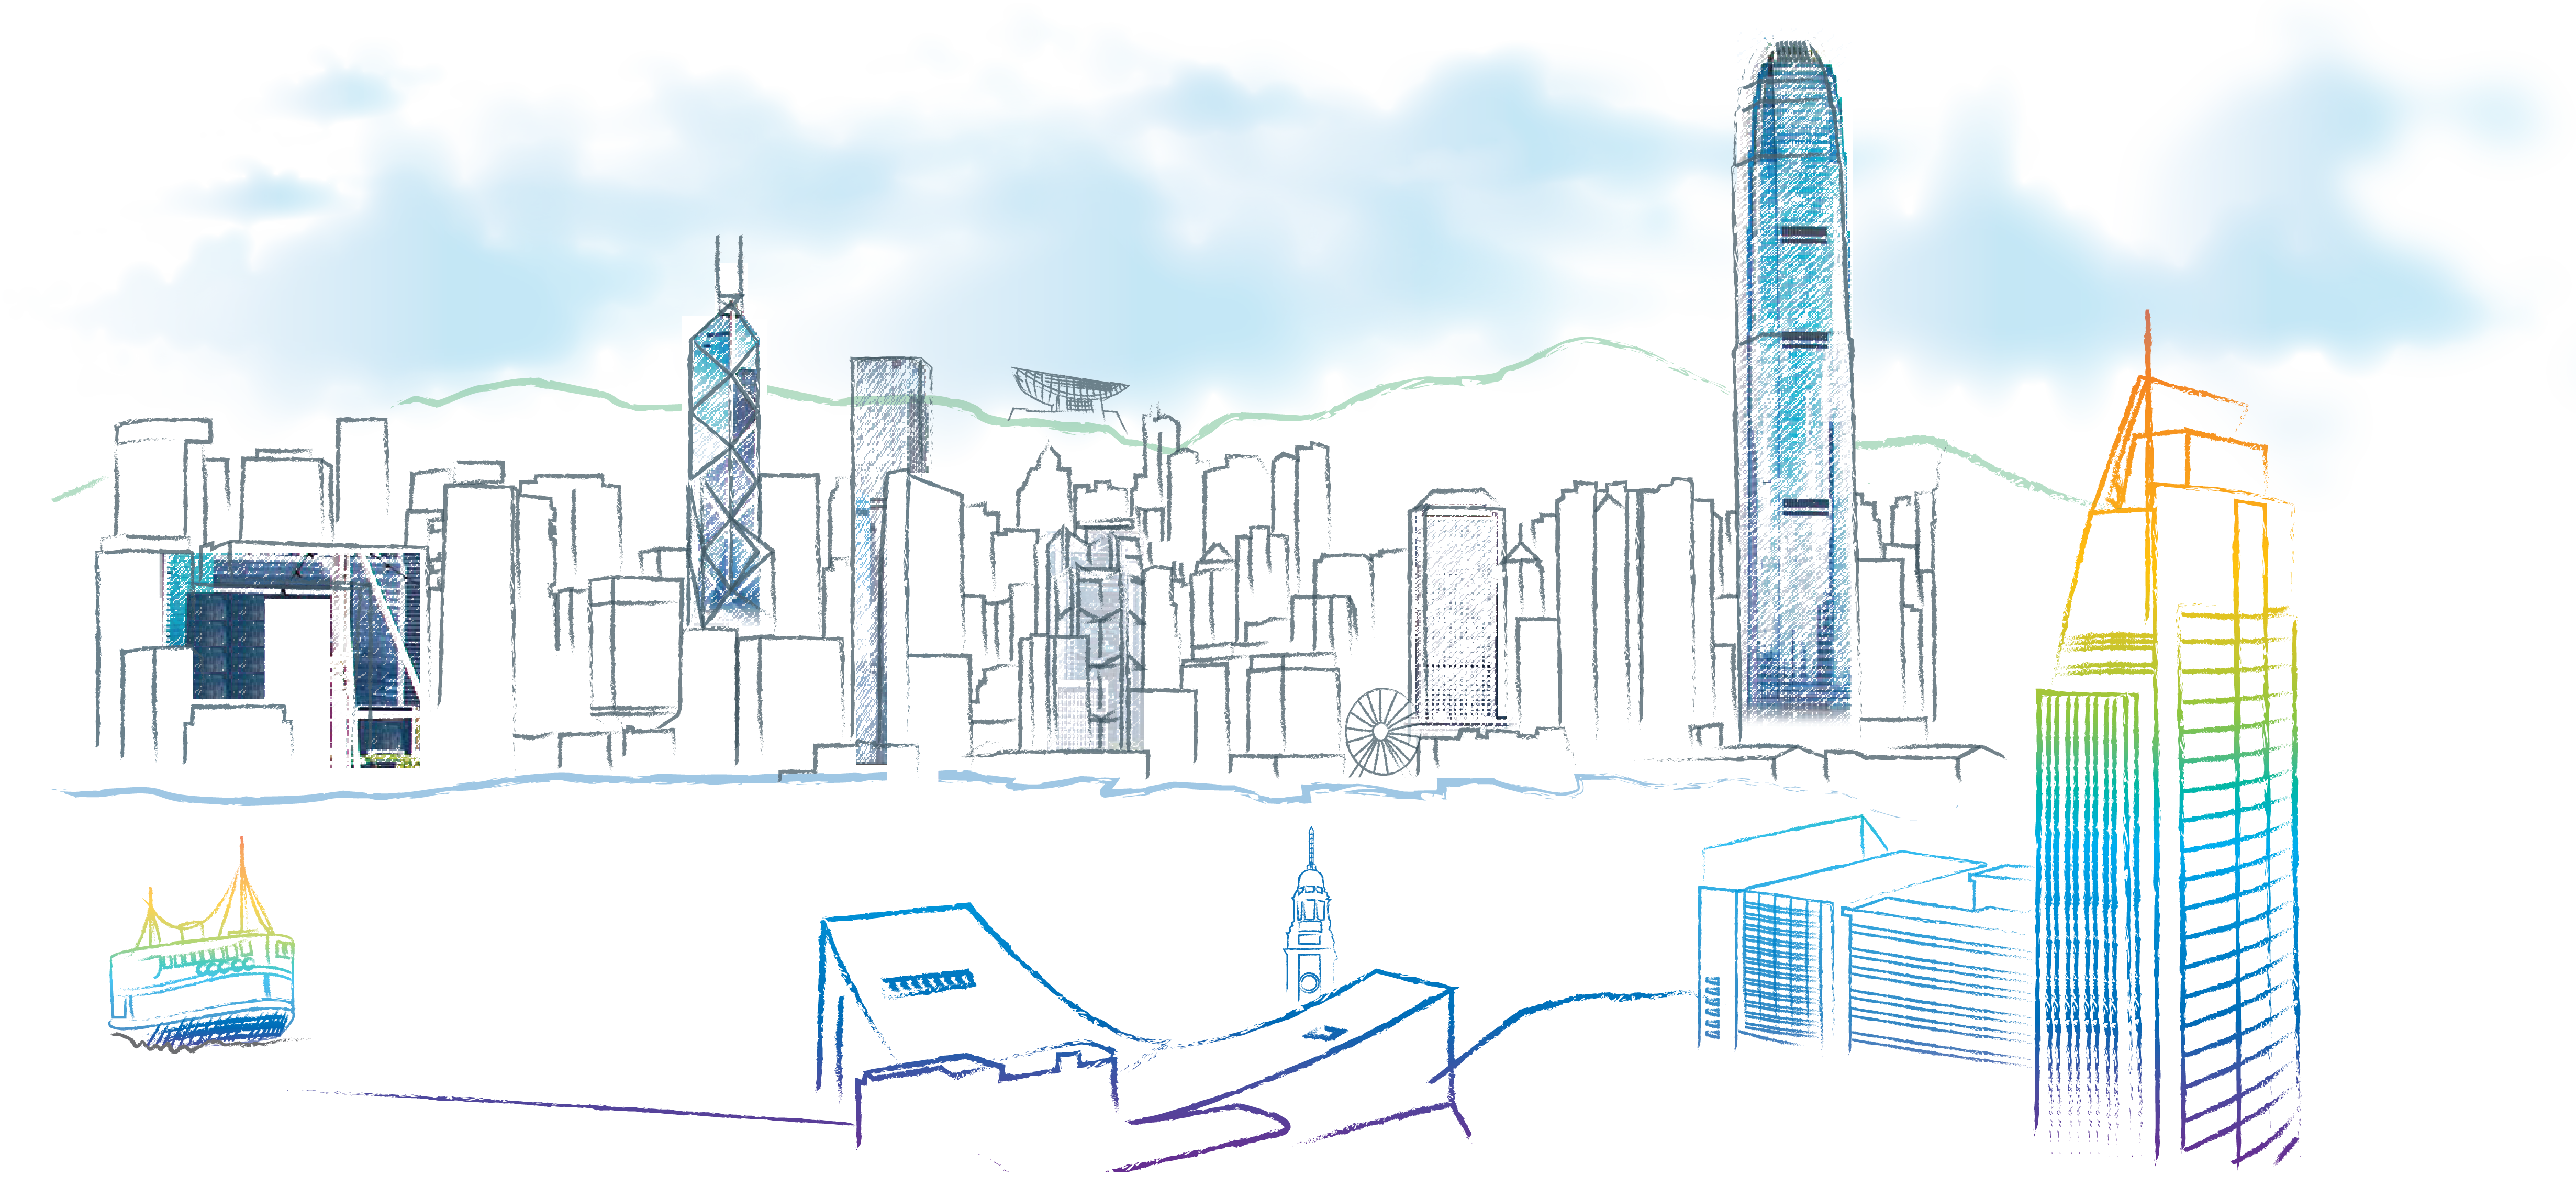 Vision drawing skyline. Braingermcell welcome message by